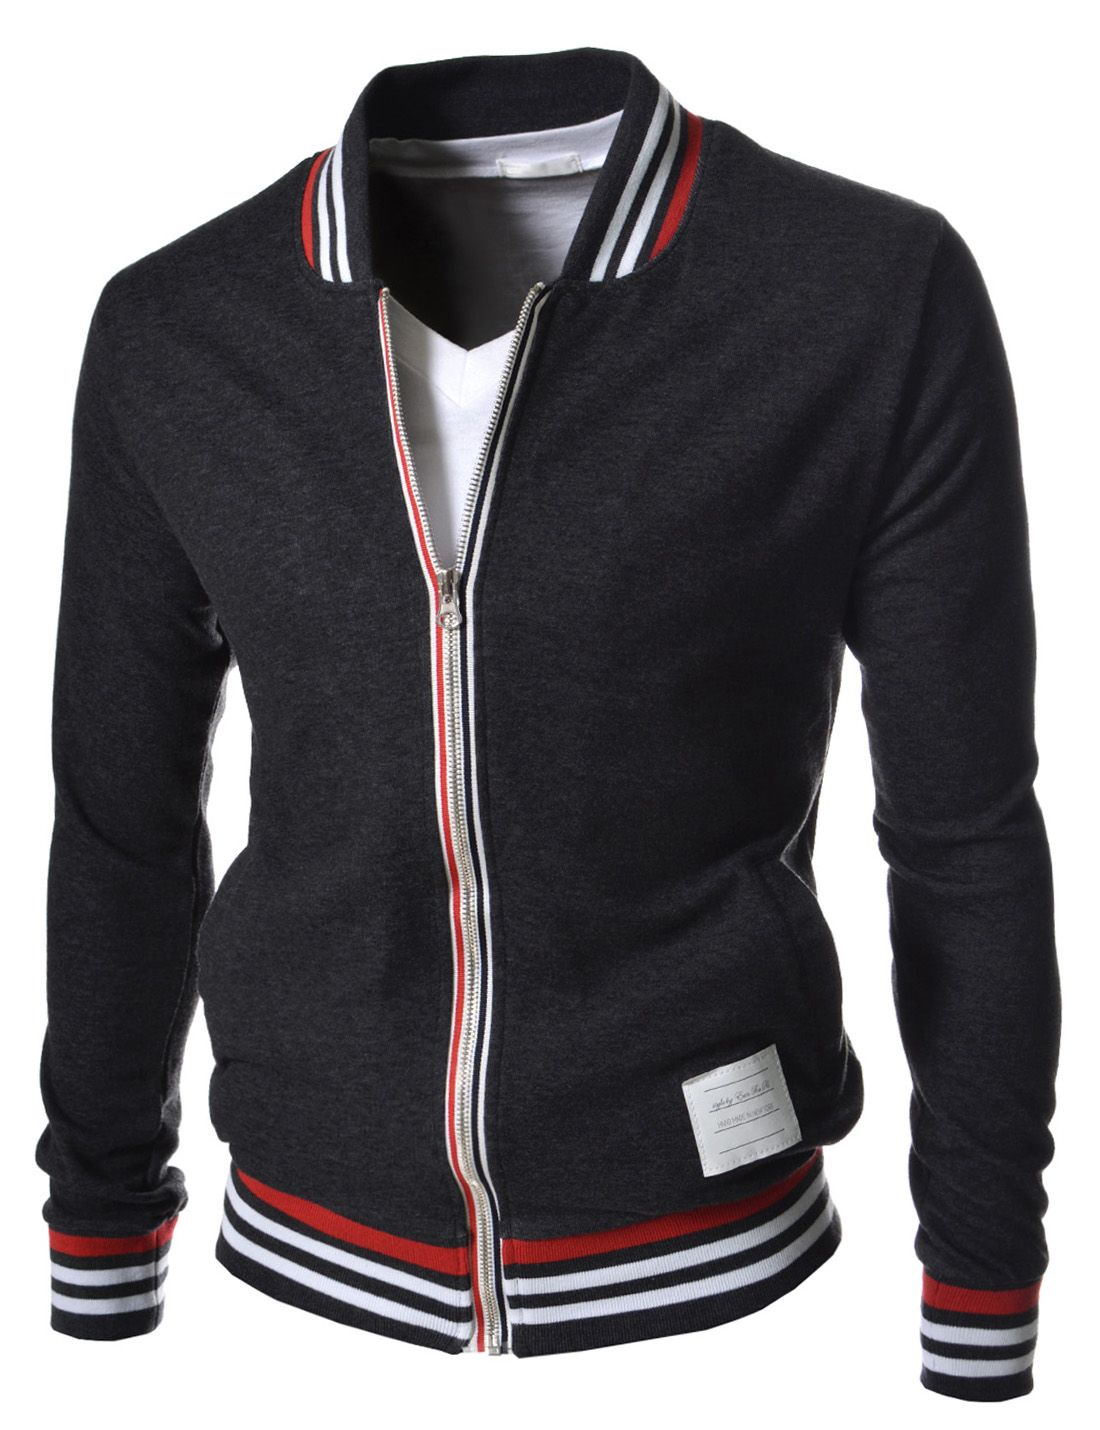 Brand New Slim Fit Baseball Blouson Jackets For Men Accent Stripes At Neck Line And Bottom Front Zipper Closure Outerwea Mens Outfits Men Casual Mens Jackets [ 1430 x 1100 Pixel ]